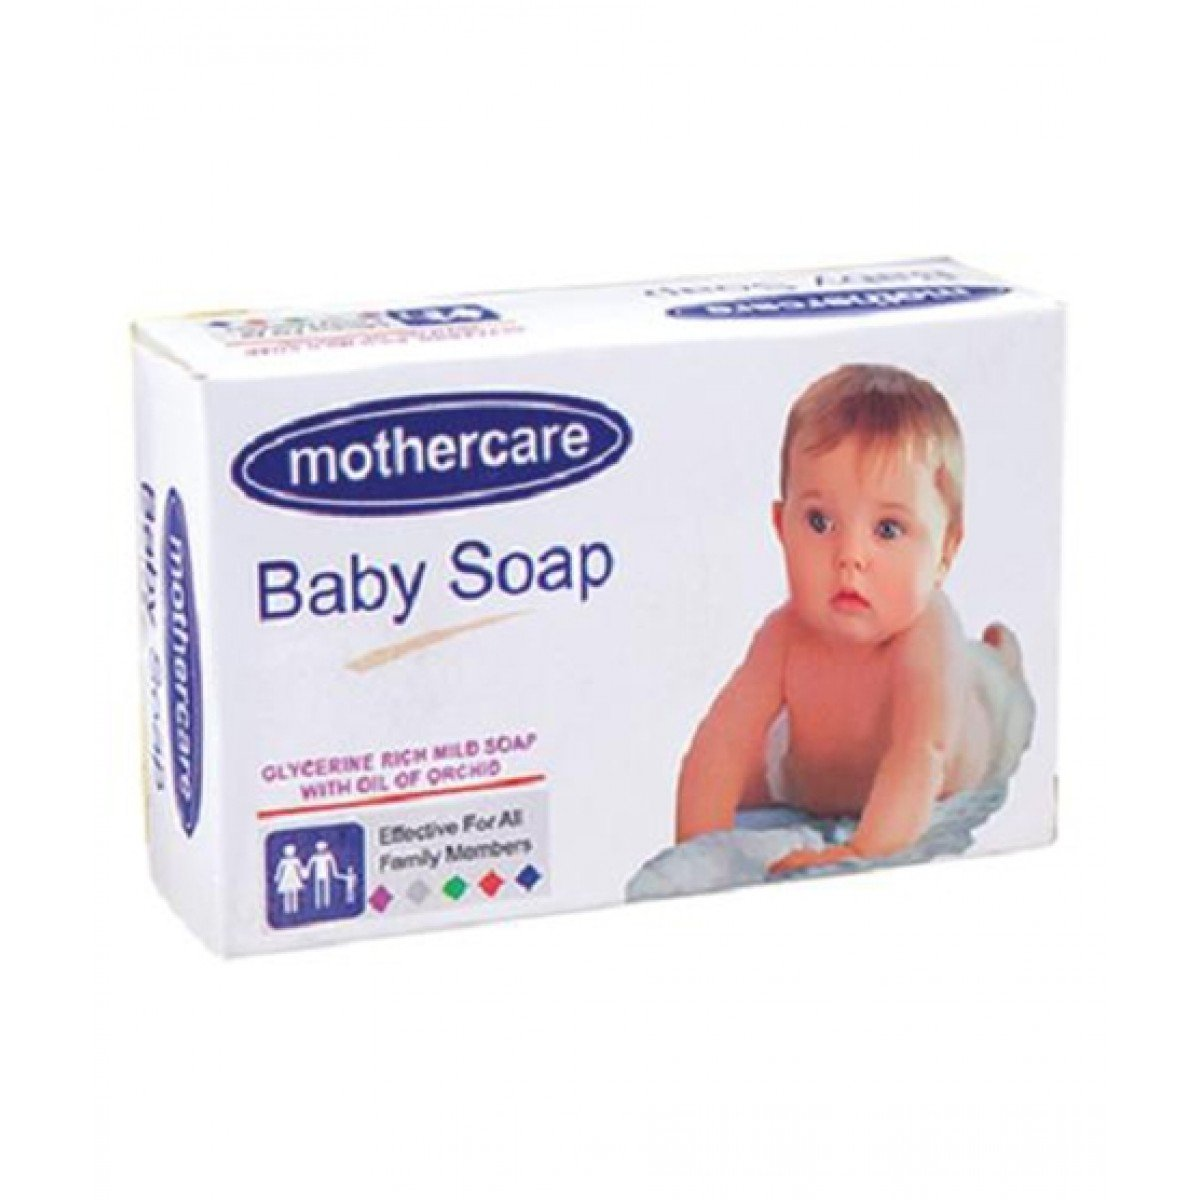 Mothercare Baby Soap 80g